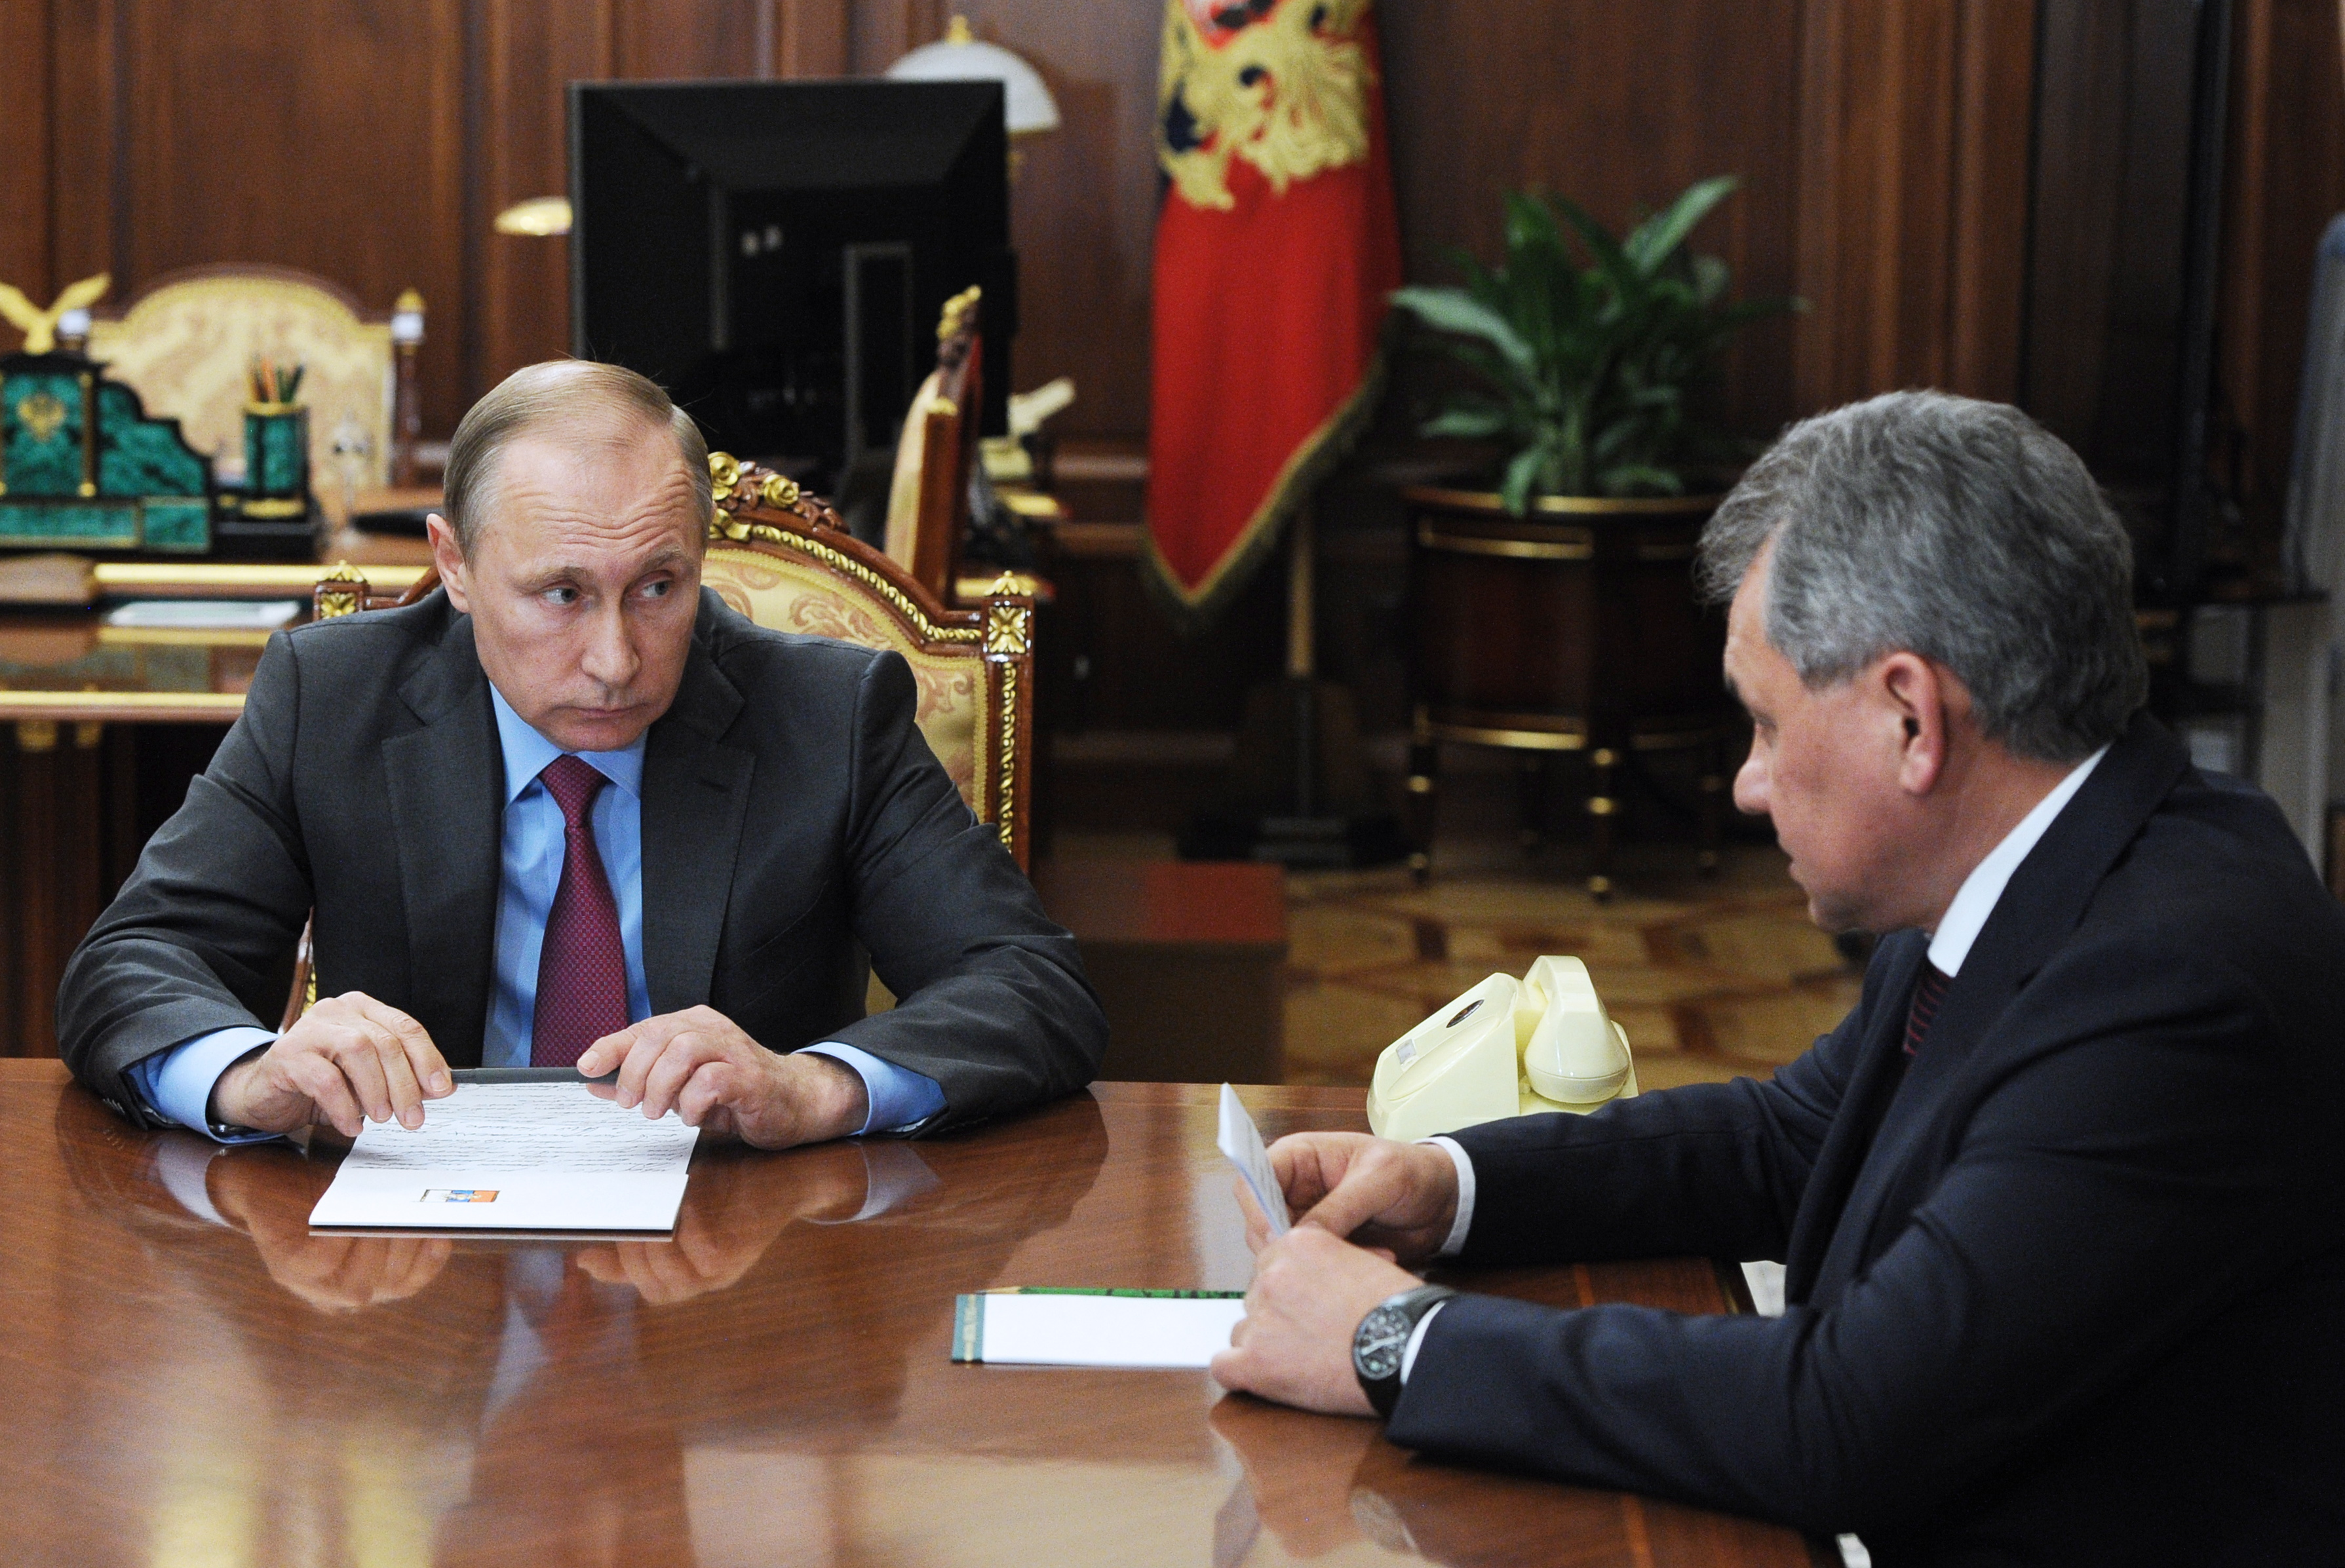 President Putin meets with foreign minister Lavrov and defence minister Shoigu